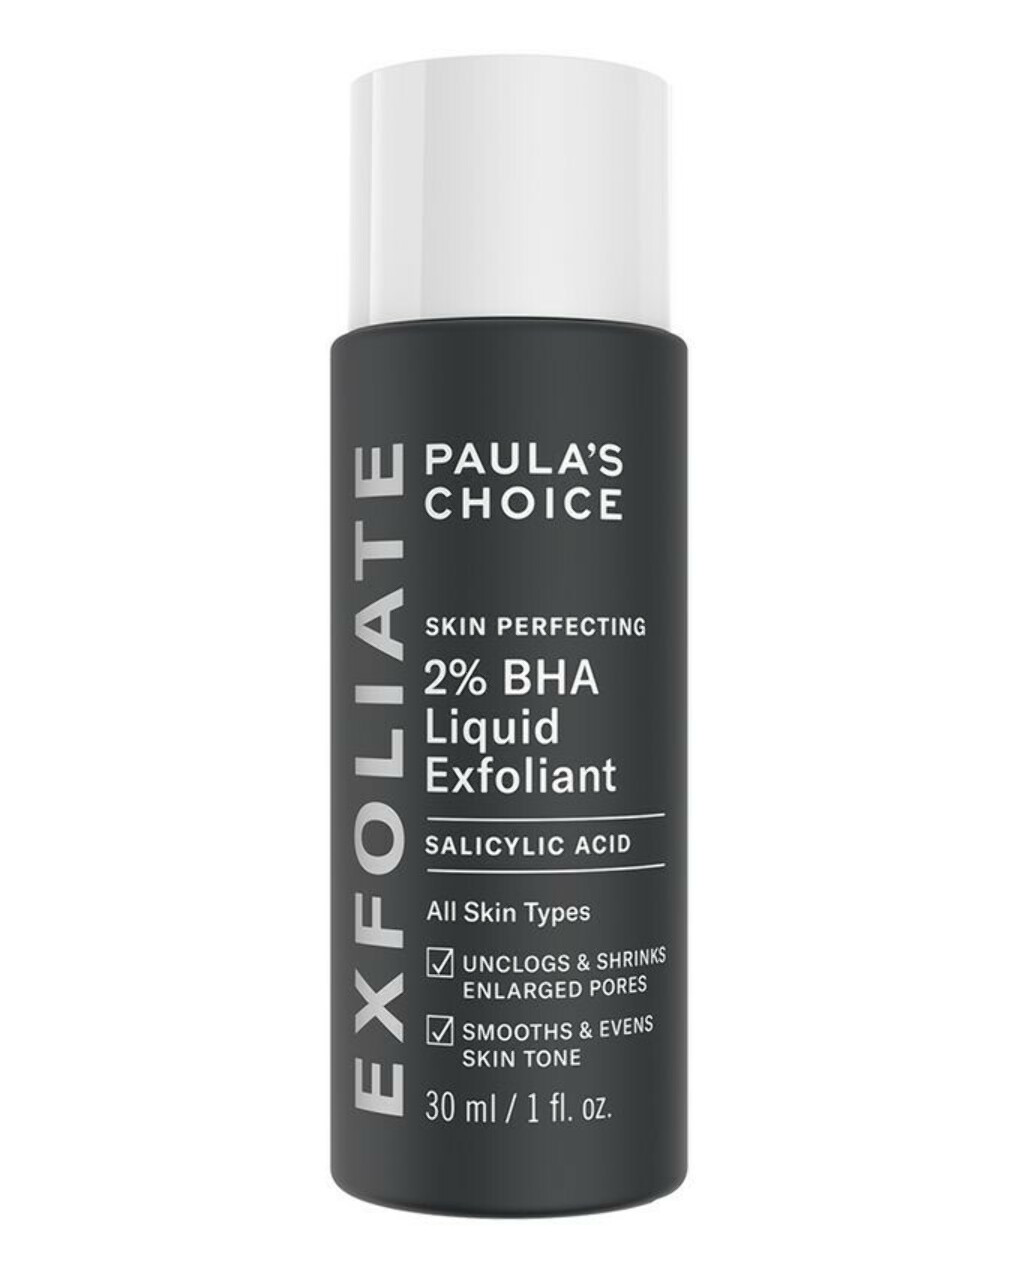 PAULA'S CHOICE Skin Perfecting 2% BHA Liquid Exfoliant( 30ml )